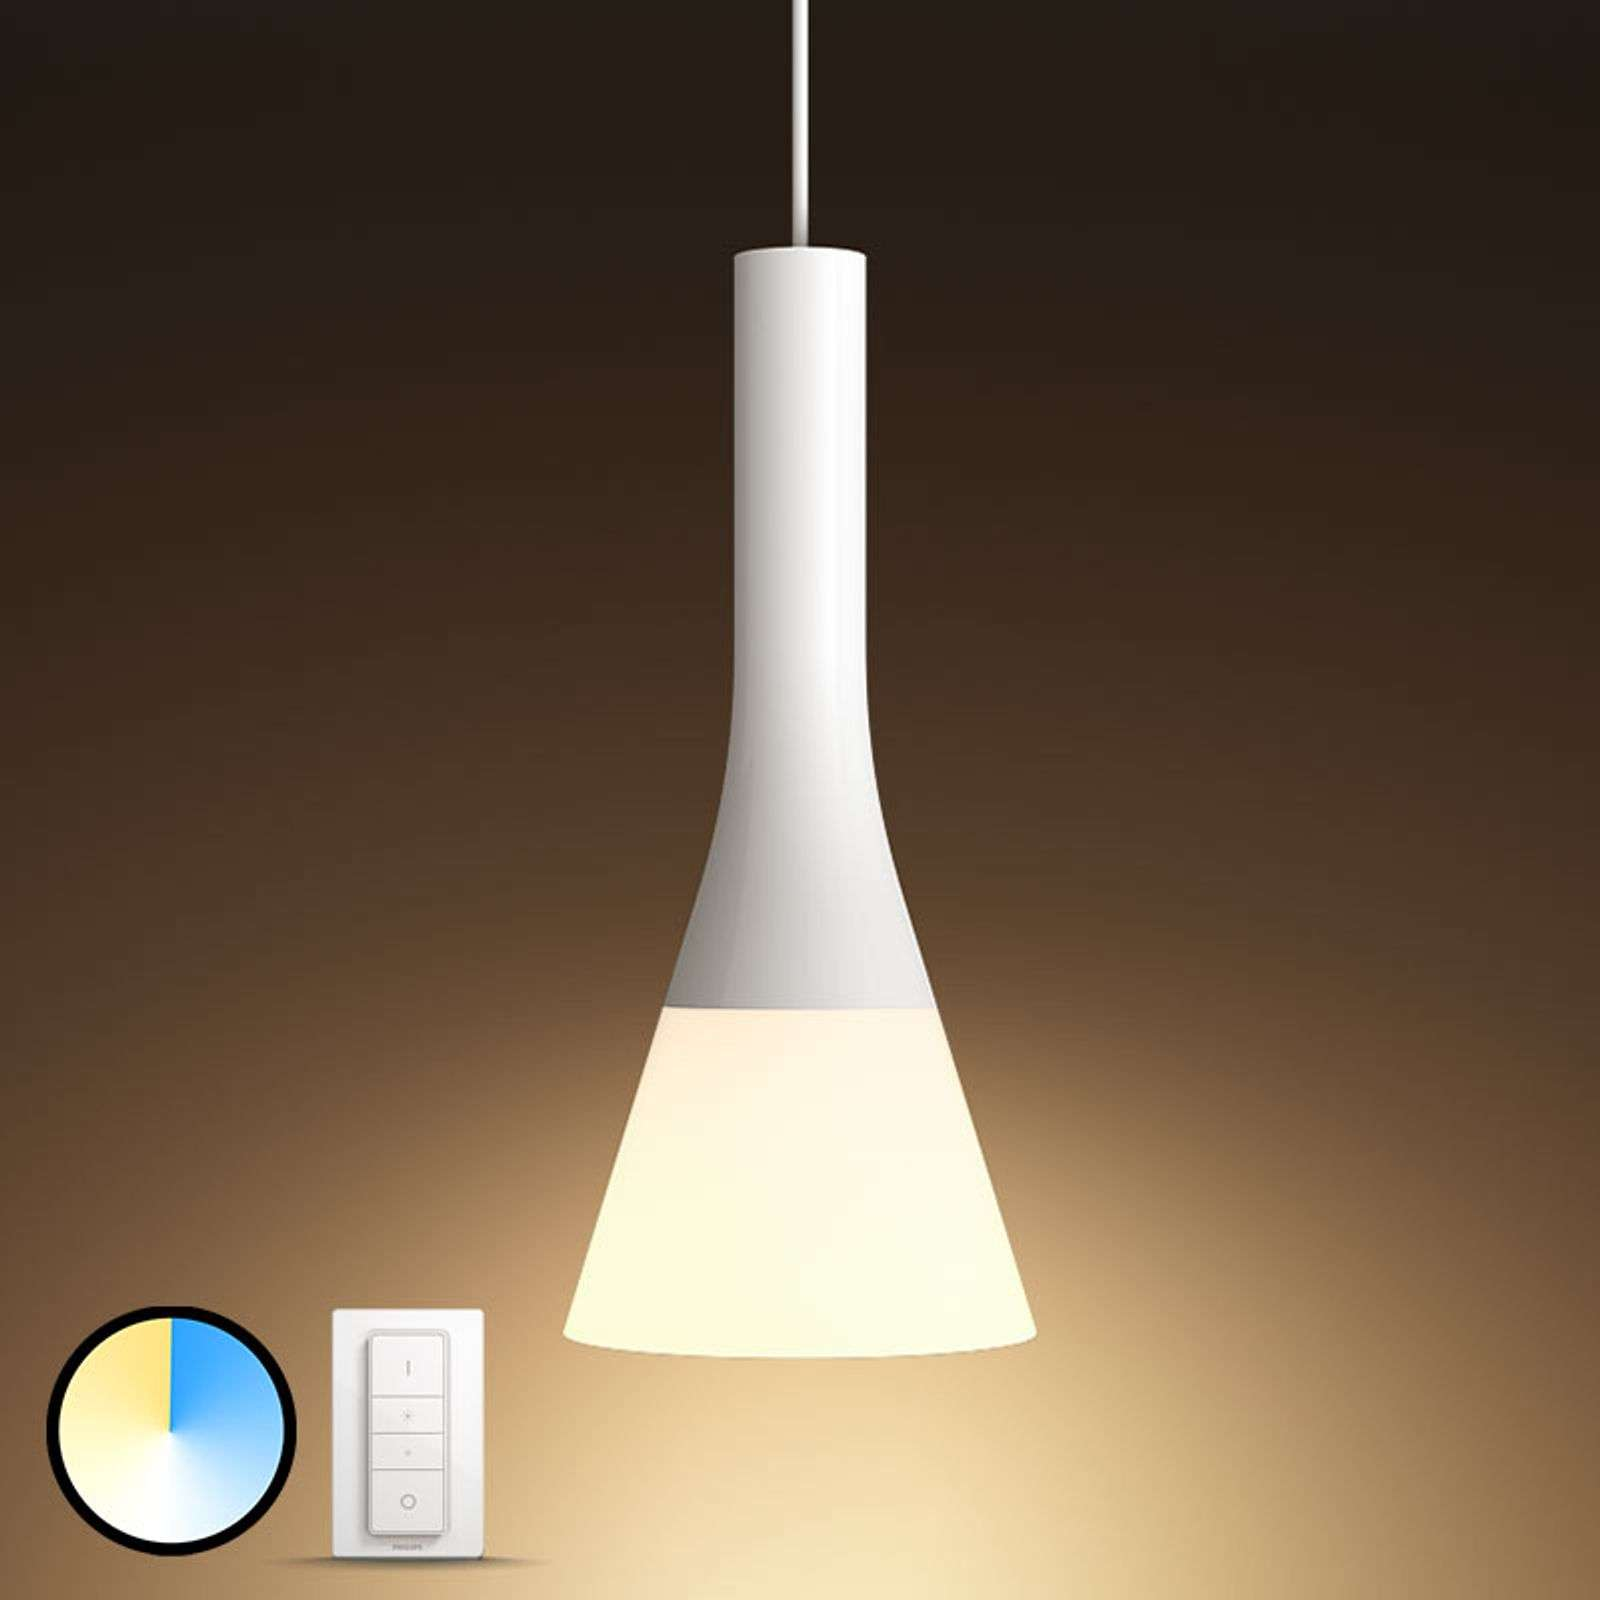 Philips Hue White Ambiance sospensione, dimmer